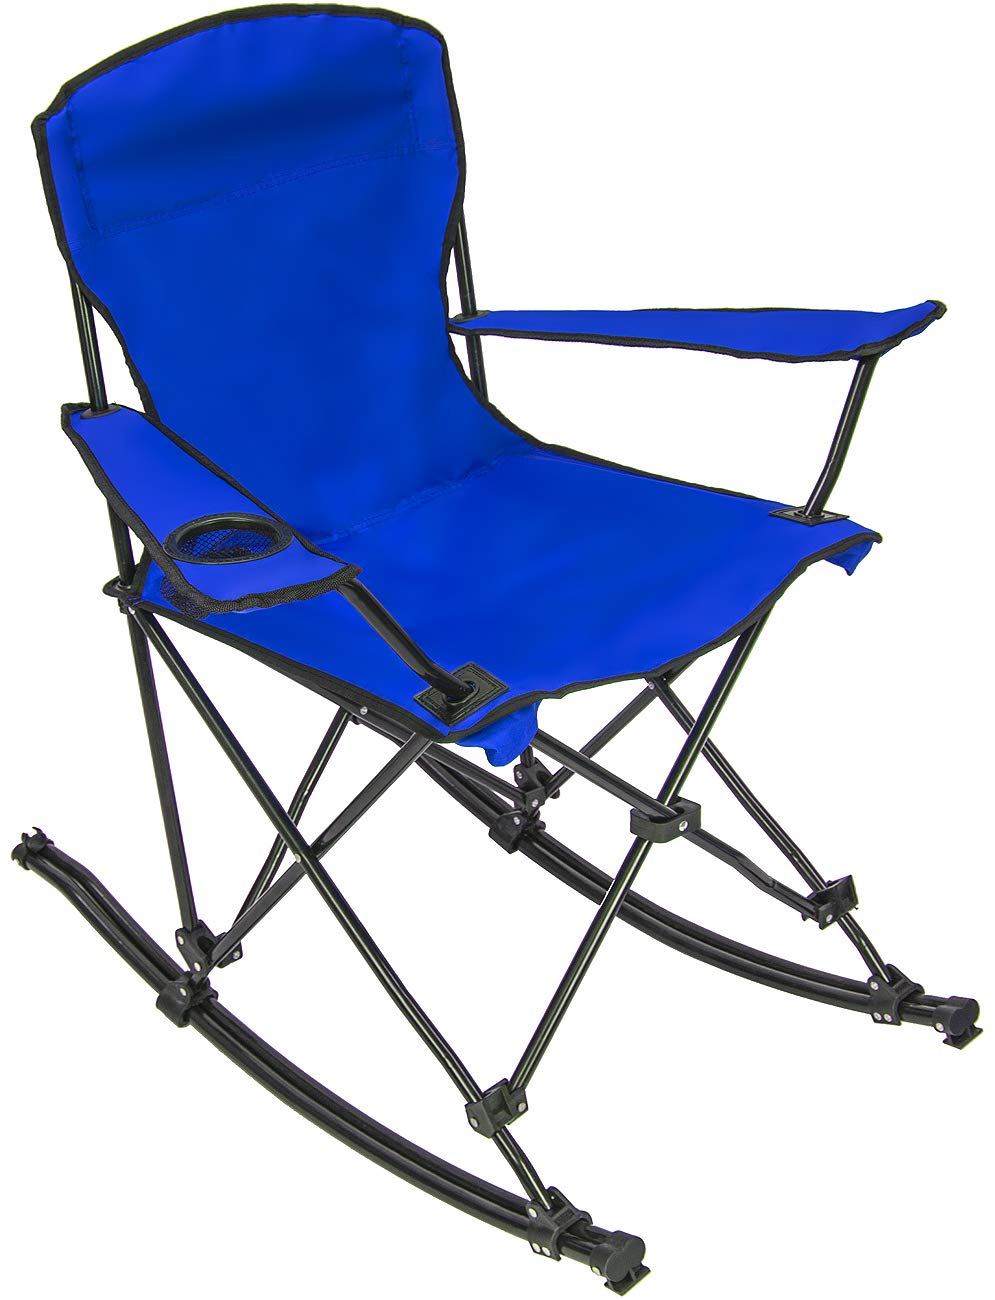 Sorbus Quad Rocking Chair with Cup Holder Cooler, Foldable Frame, Portable Carry Bag, Recliner Chair Great Outdoor Chair for Camping, Sporting Events, Travel, Backyard, Patio (Rocking Chair - Blue) by Sorbus